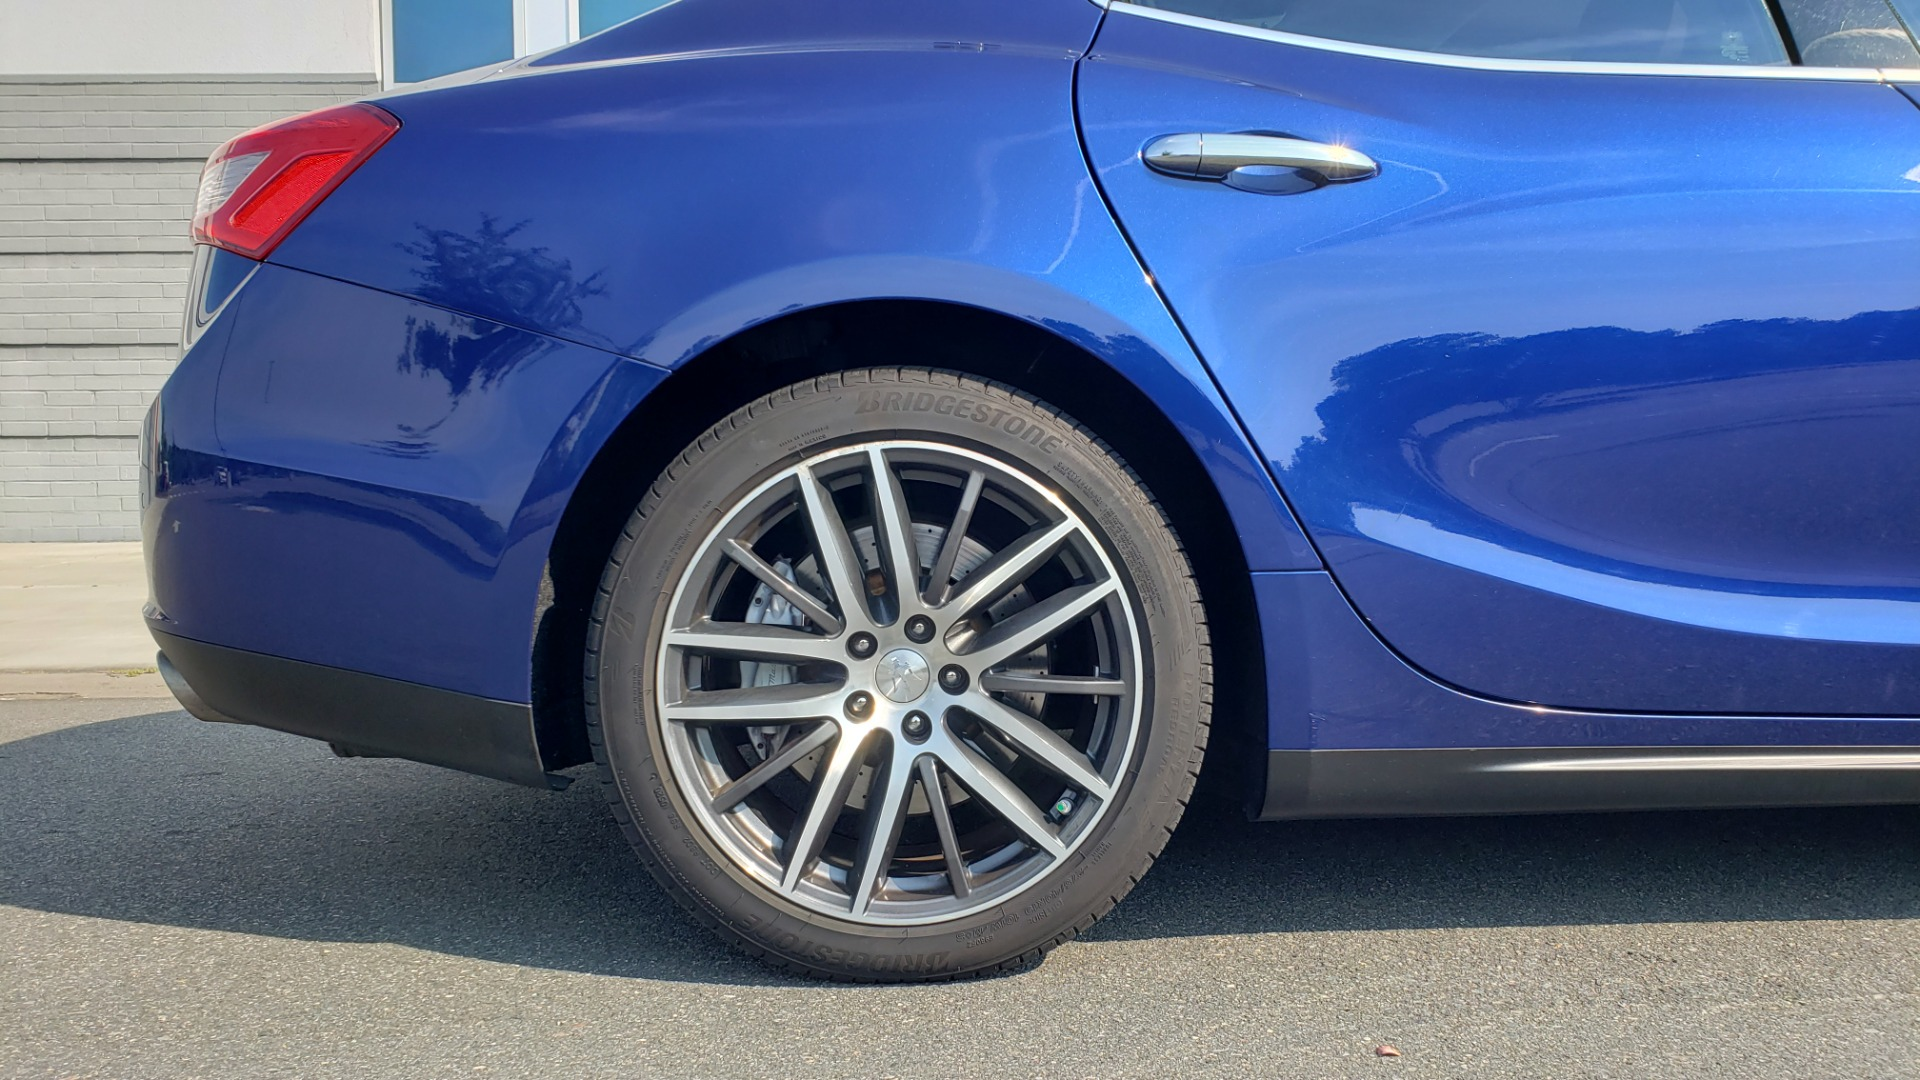 Used 2015 Maserati GHIBLI SEDAN / 3.0L V6 / 8-SPD AUTO / NAV / HTD STS / SUNROOF / REARVIEW for sale $24,495 at Formula Imports in Charlotte NC 28227 84